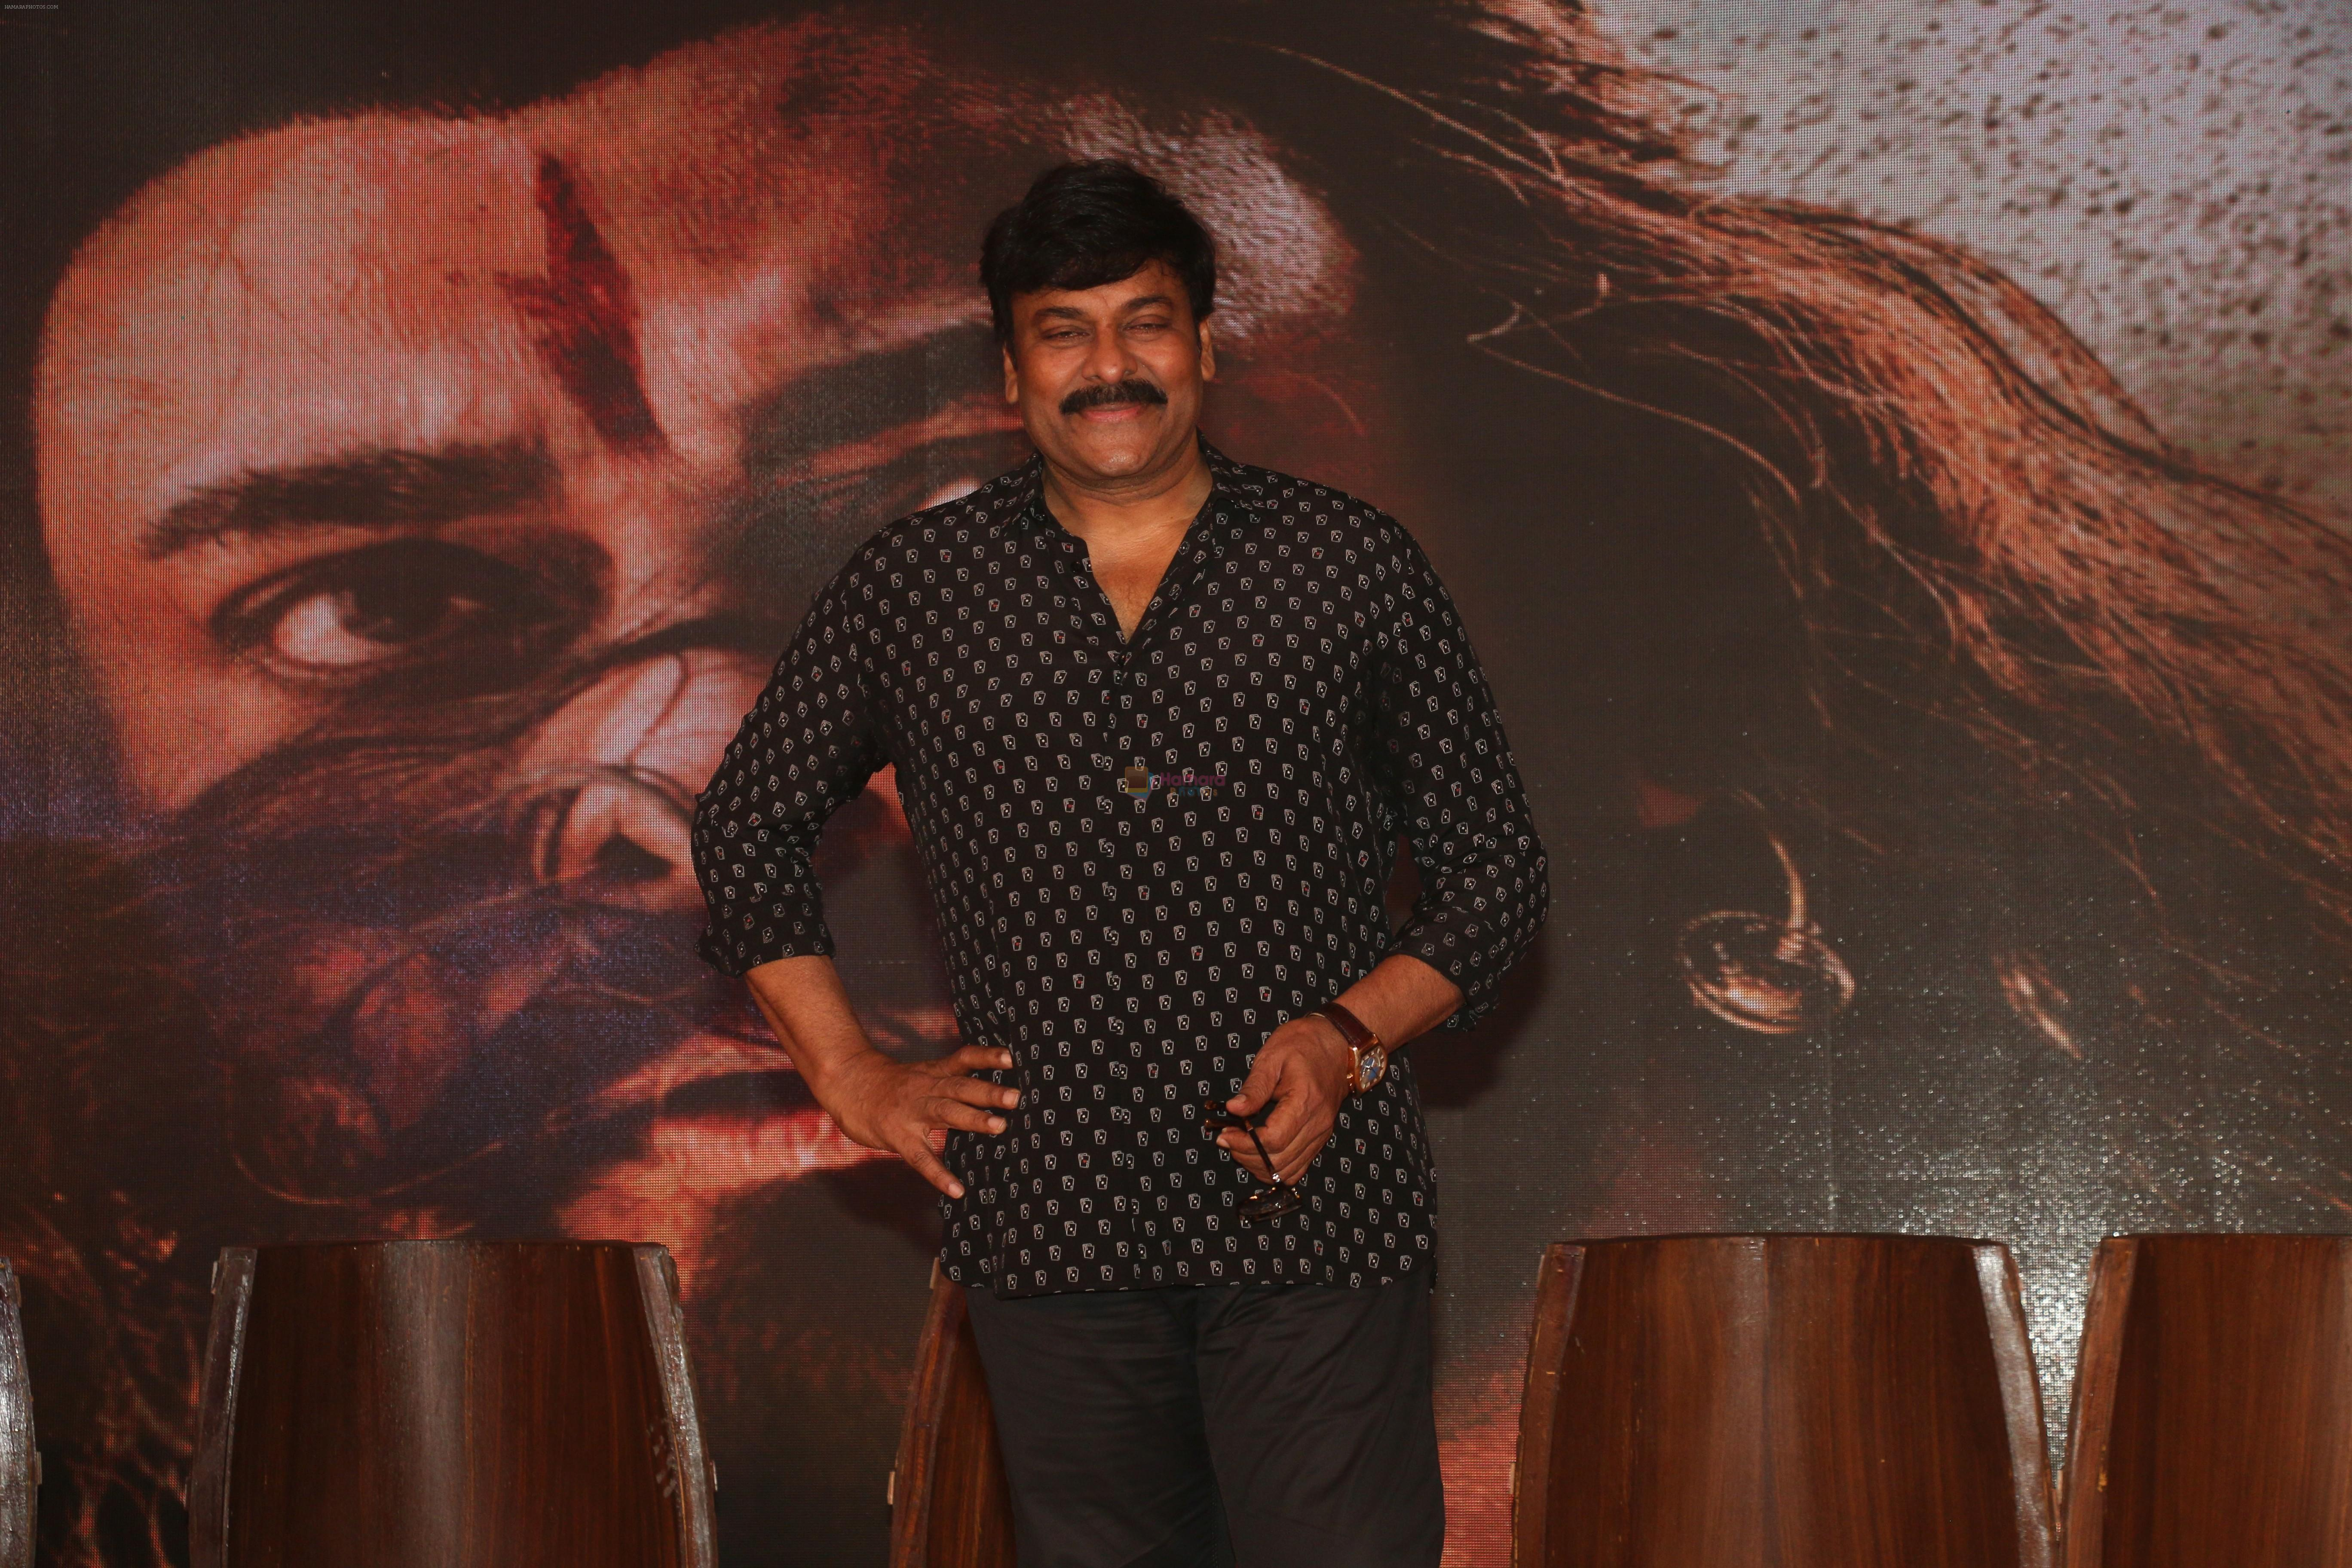 Chiranjeevi at the Trailer launch of film Sye Raa Narasimha Reddy in jw marriott juhu on 20th Aug 2019